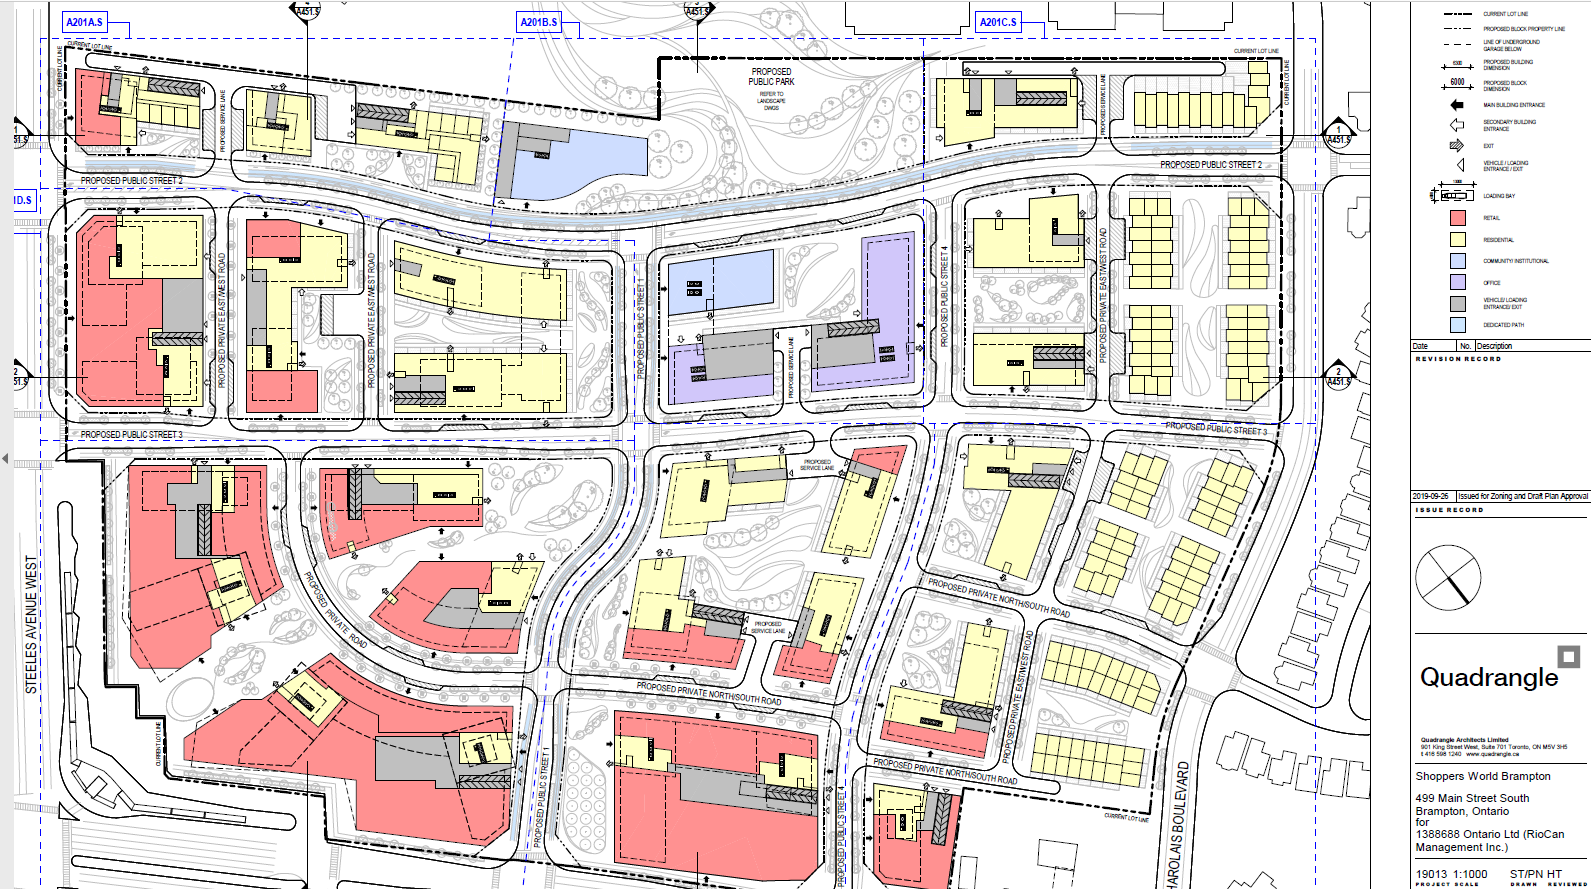 Site Plan of Shoppers World Brampton redevelopment